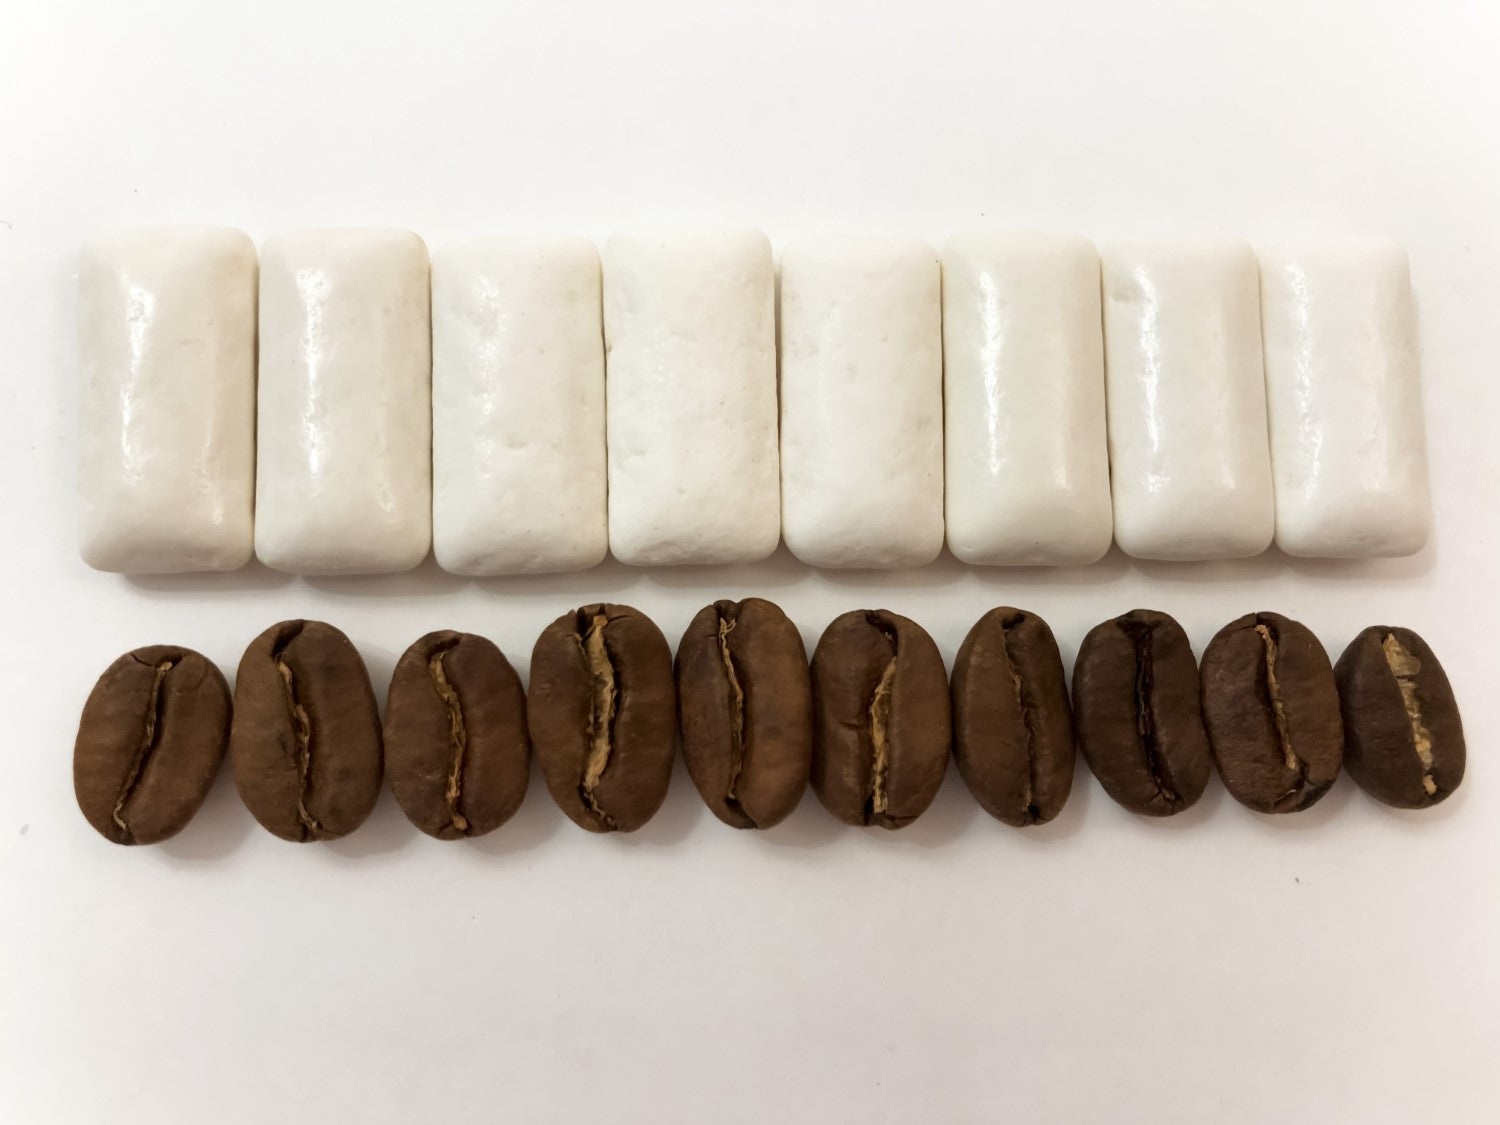 chewing gum and coffee beans